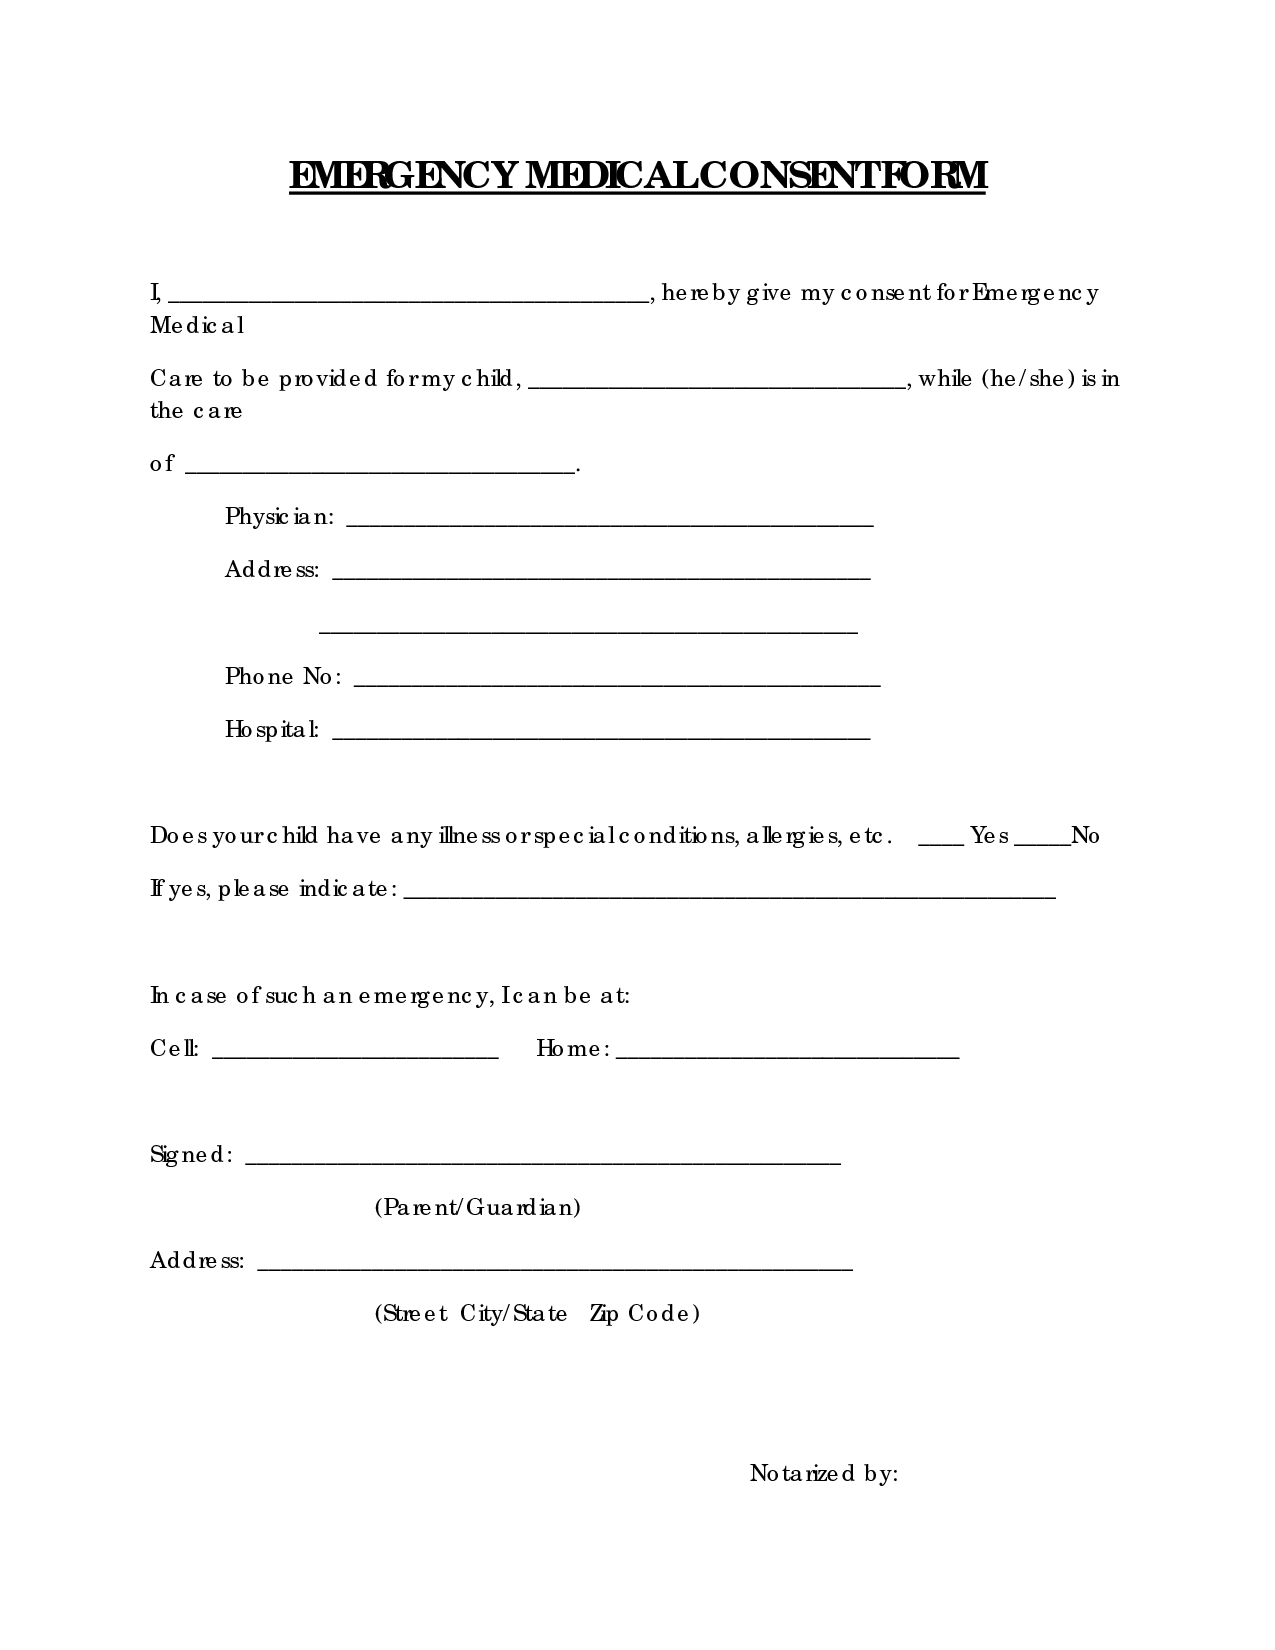 Free Printable Medical Consent Form  Emergency Medical Consent